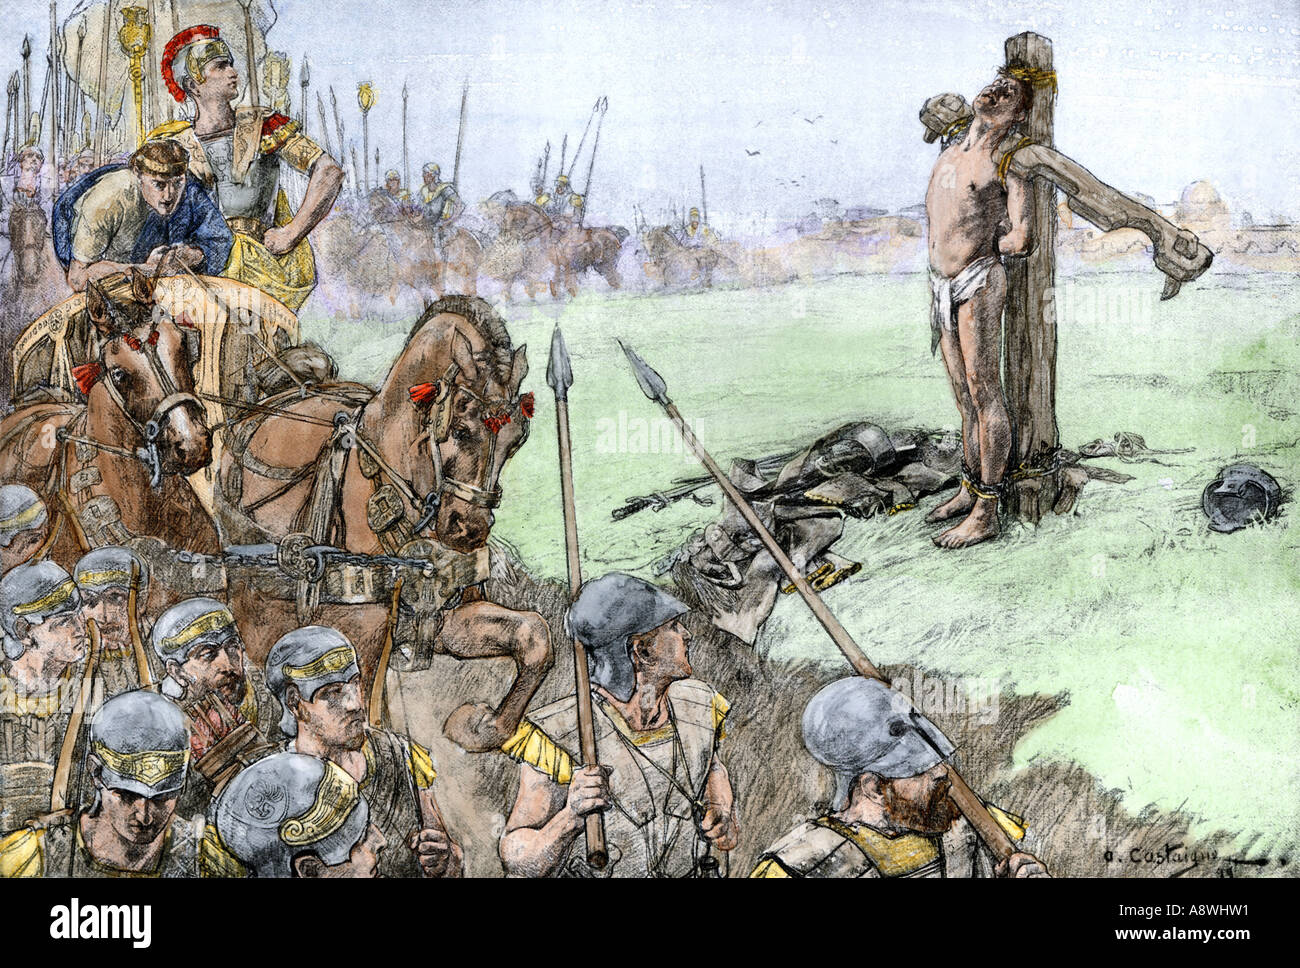 Alexander the Great punishing Bessus of Bactria for his opposition 328 BC. Hand-colored halftone of an illustration - Stock Image